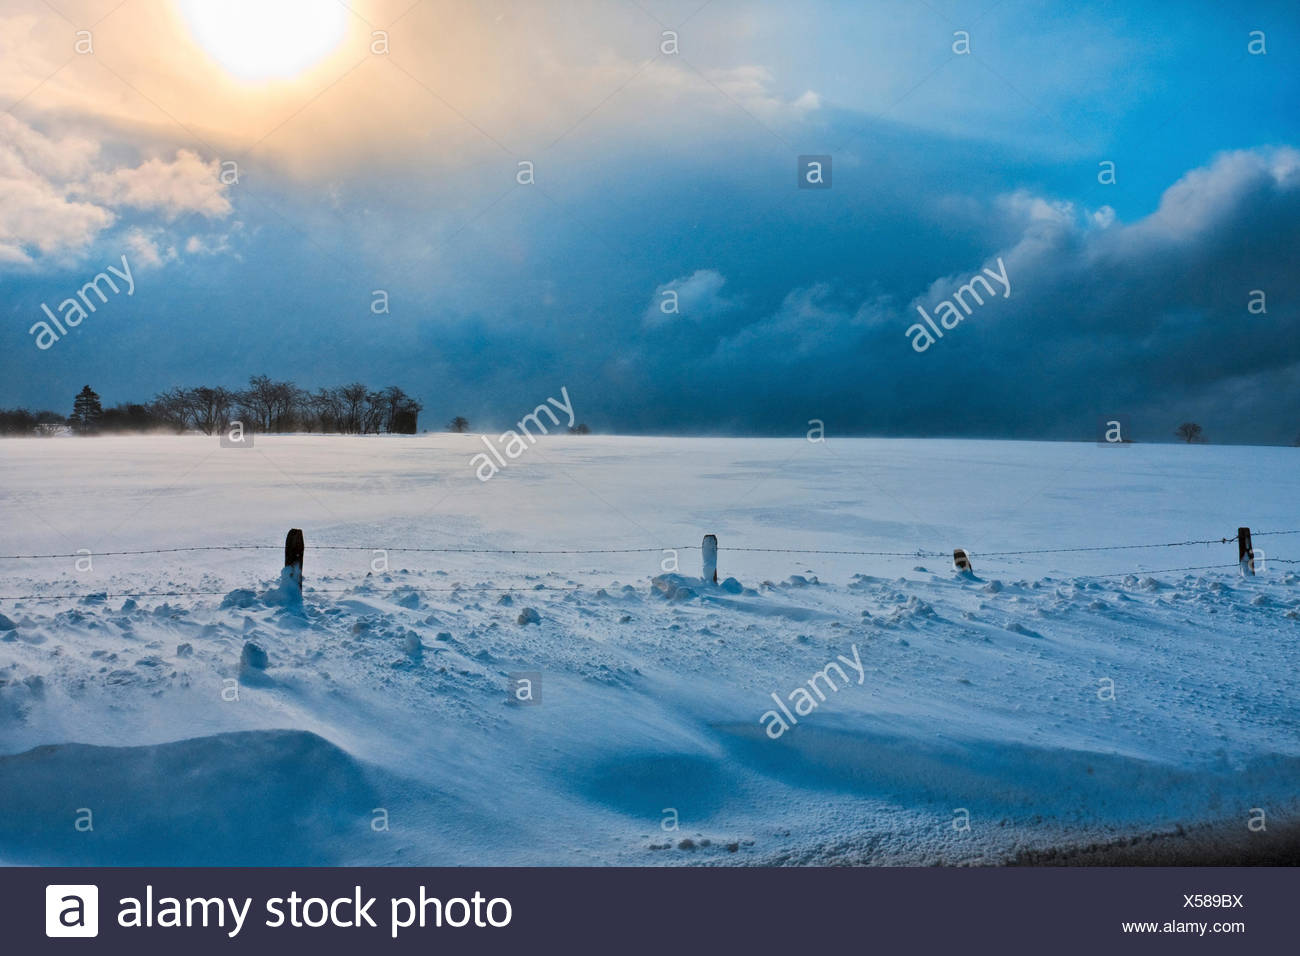 snow bank, Belgium, Ardennen, Winterlandschaft Stock Photo